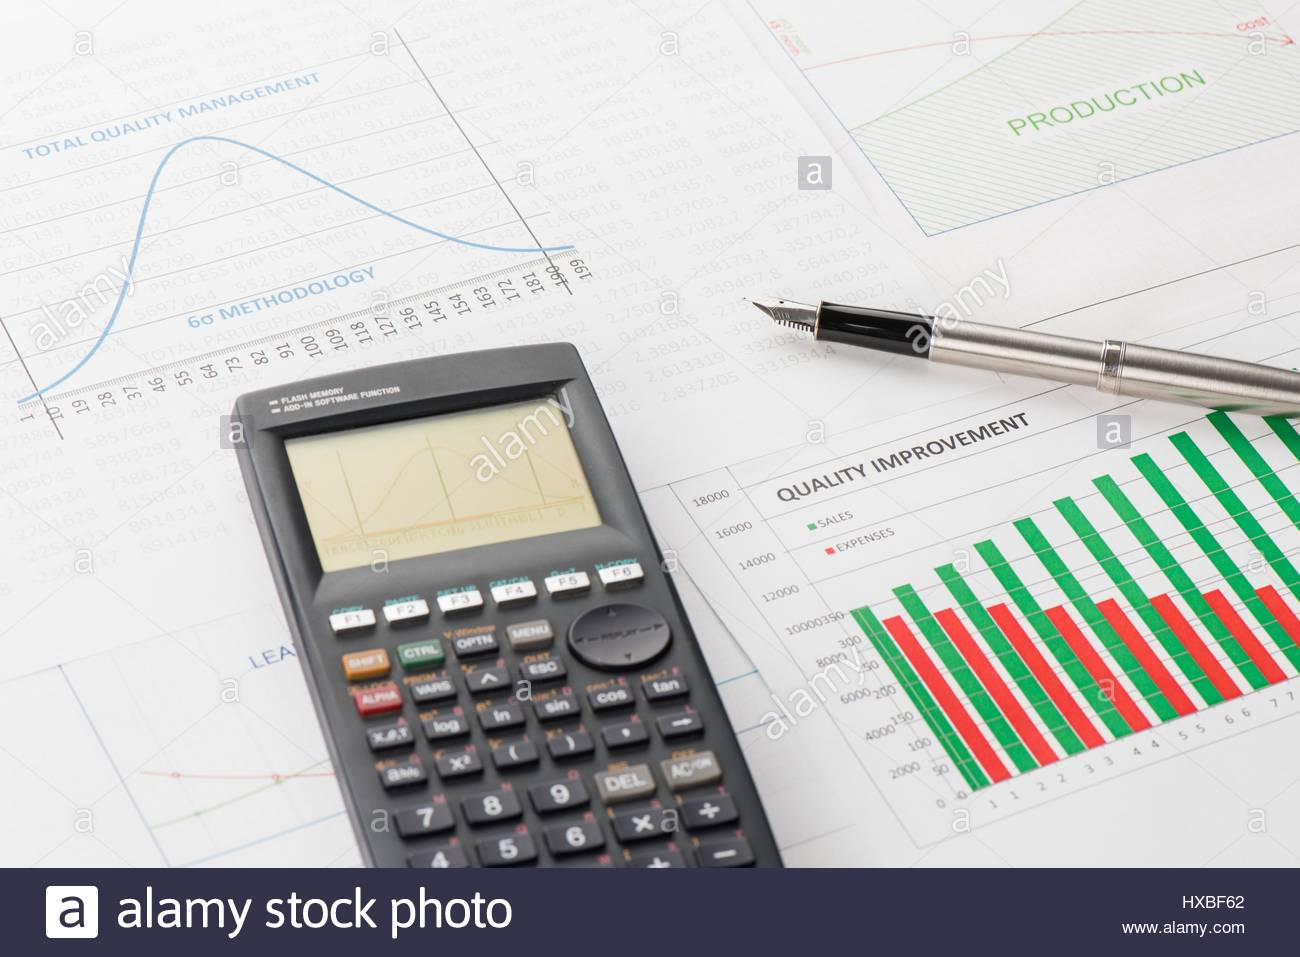 Scientific calculator pen stock photos scientific calculator pen efficiency of quality management is shown by graphics stock image ccuart Images